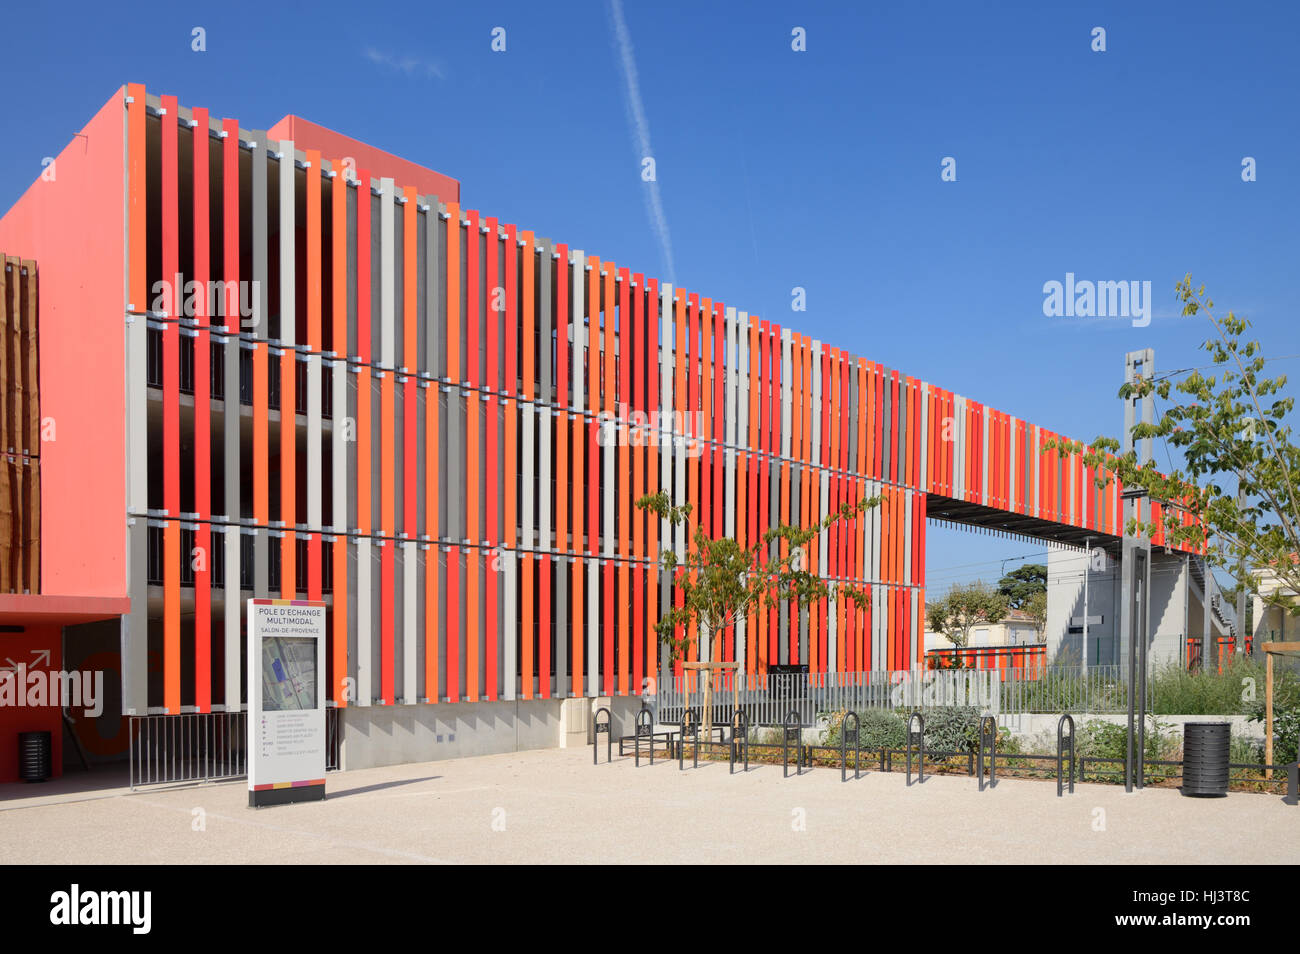 multi story carpark stock photos multi story carpark stock images alamy. Black Bedroom Furniture Sets. Home Design Ideas